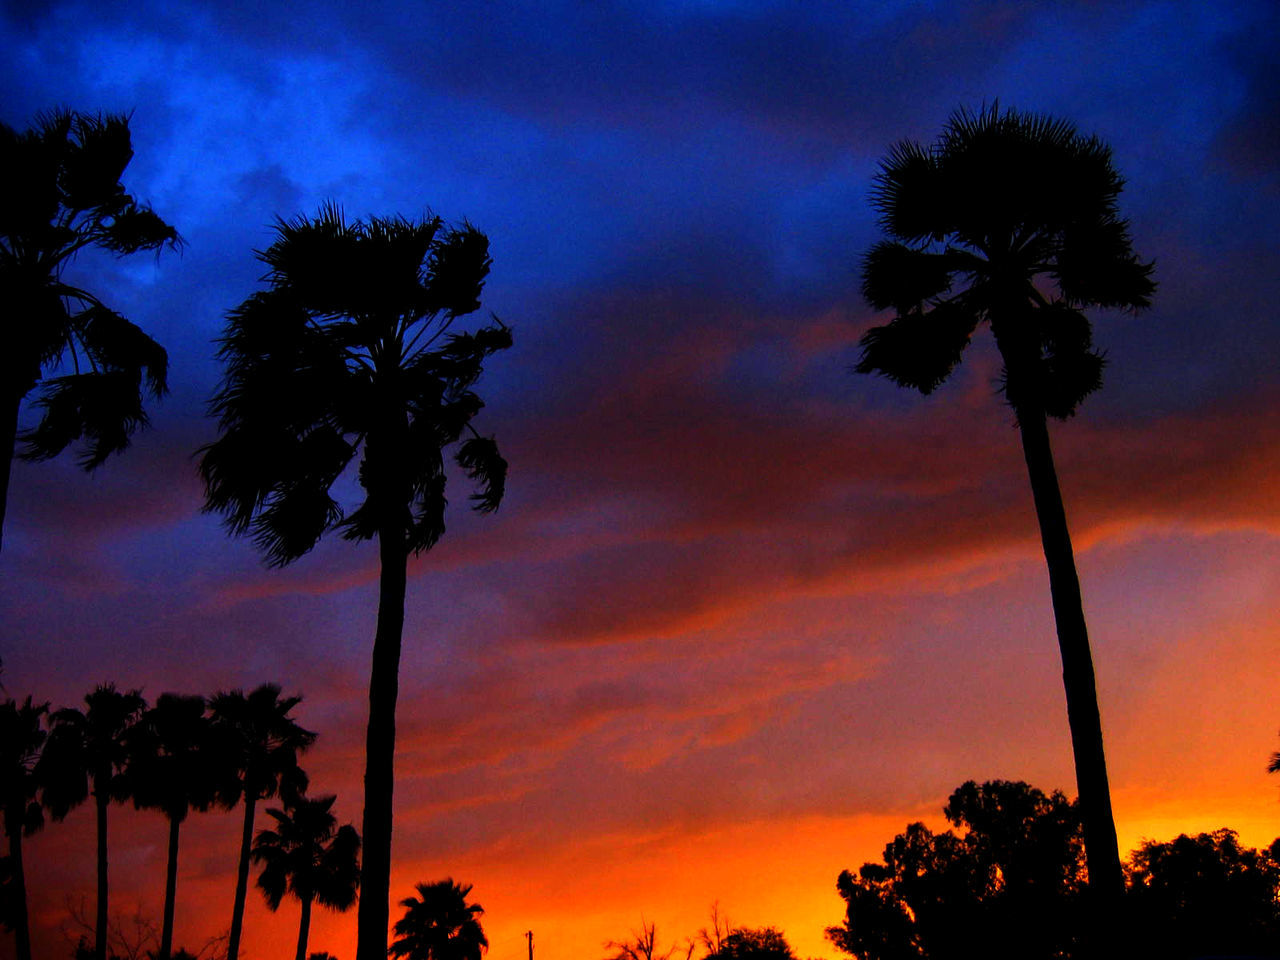 palm tree, tree, silhouette, tree trunk, sunset, sky, beauty in nature, nature, low angle view, scenics, growth, tranquility, cloud - sky, outdoors, tranquil scene, dusk, no people, night